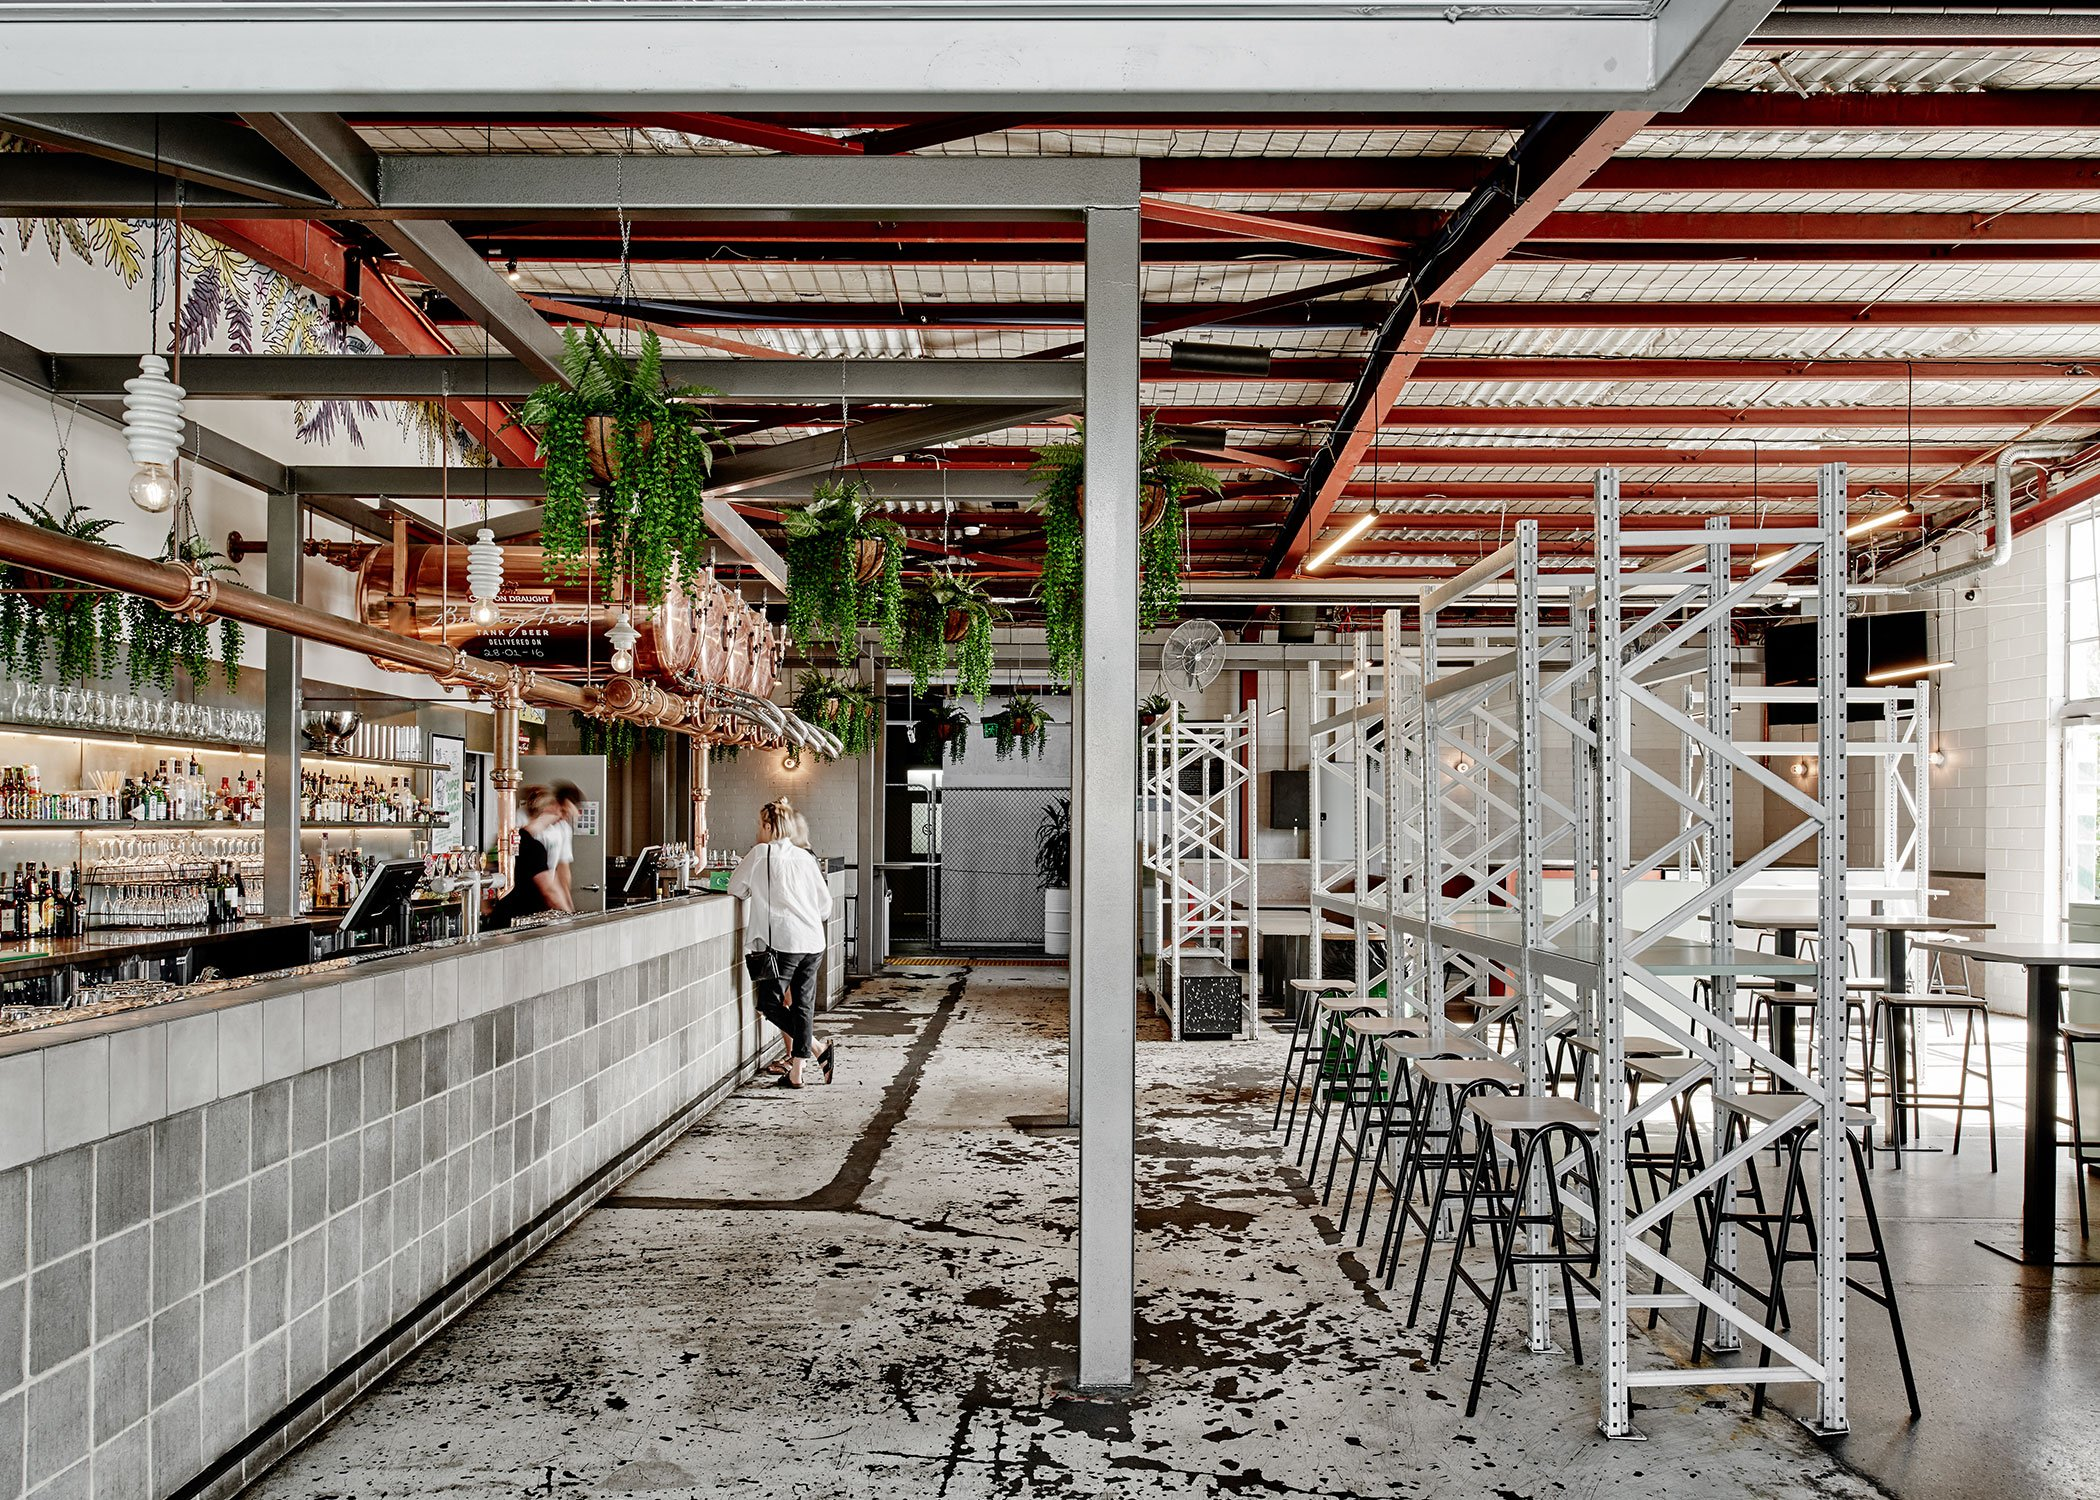 Restaurant Design Ideas How To Do Rustic Industrial Without Dating Your Restaurant